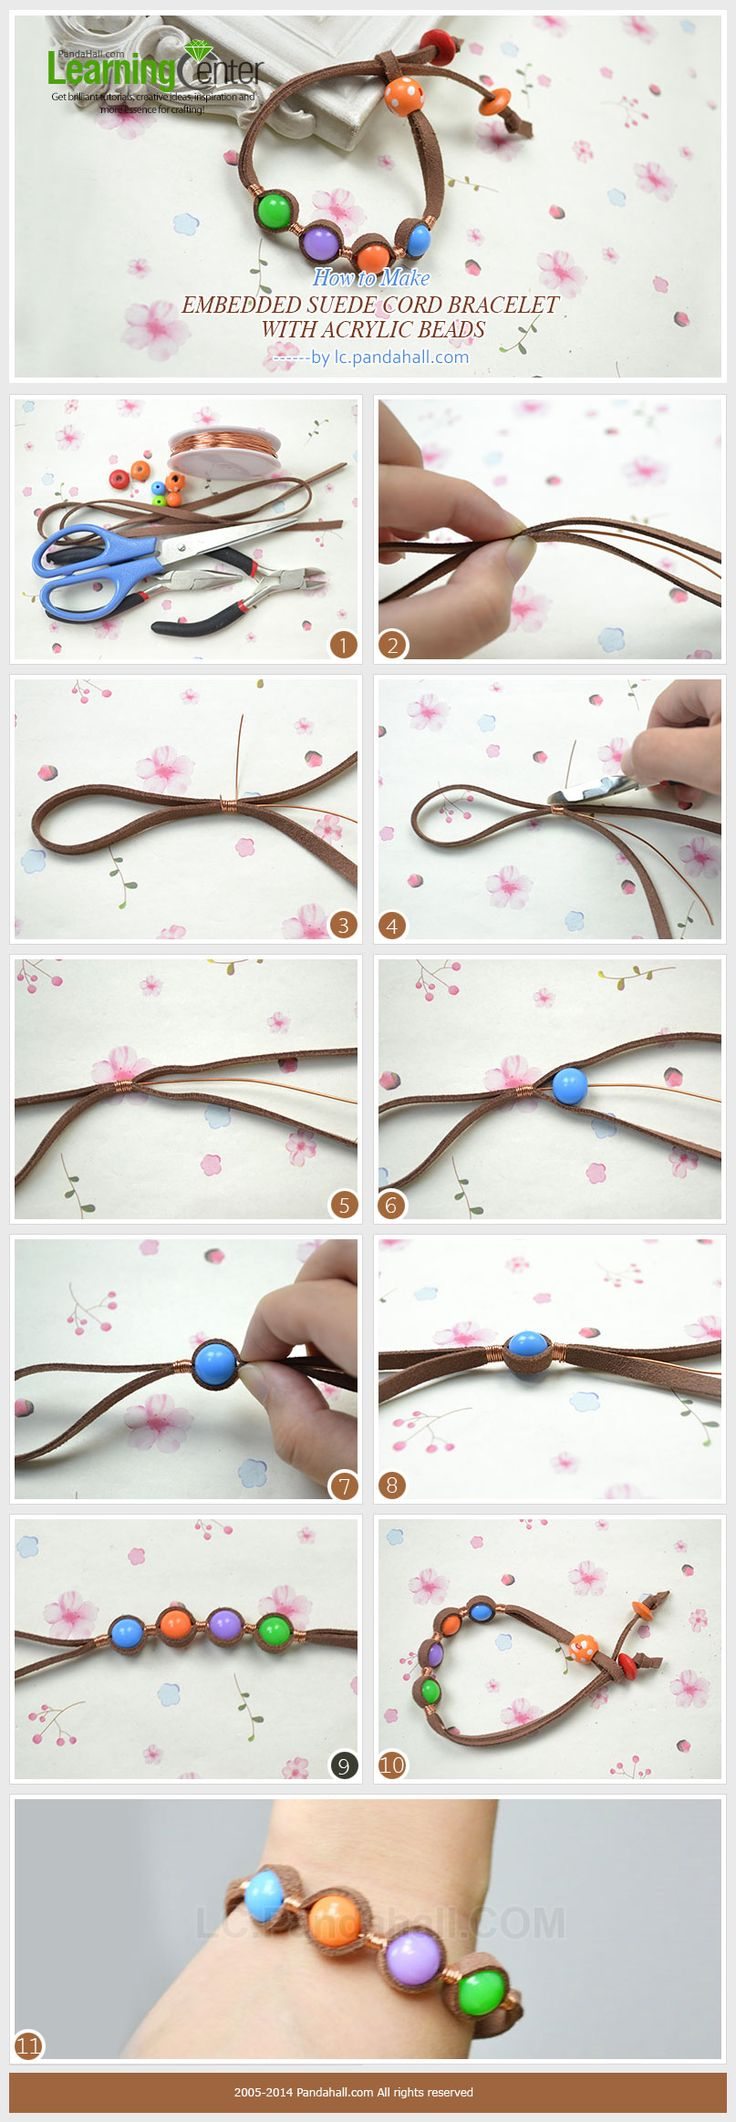 How to Make Embedded Suede Cord Bracelet with Acrylic Beads